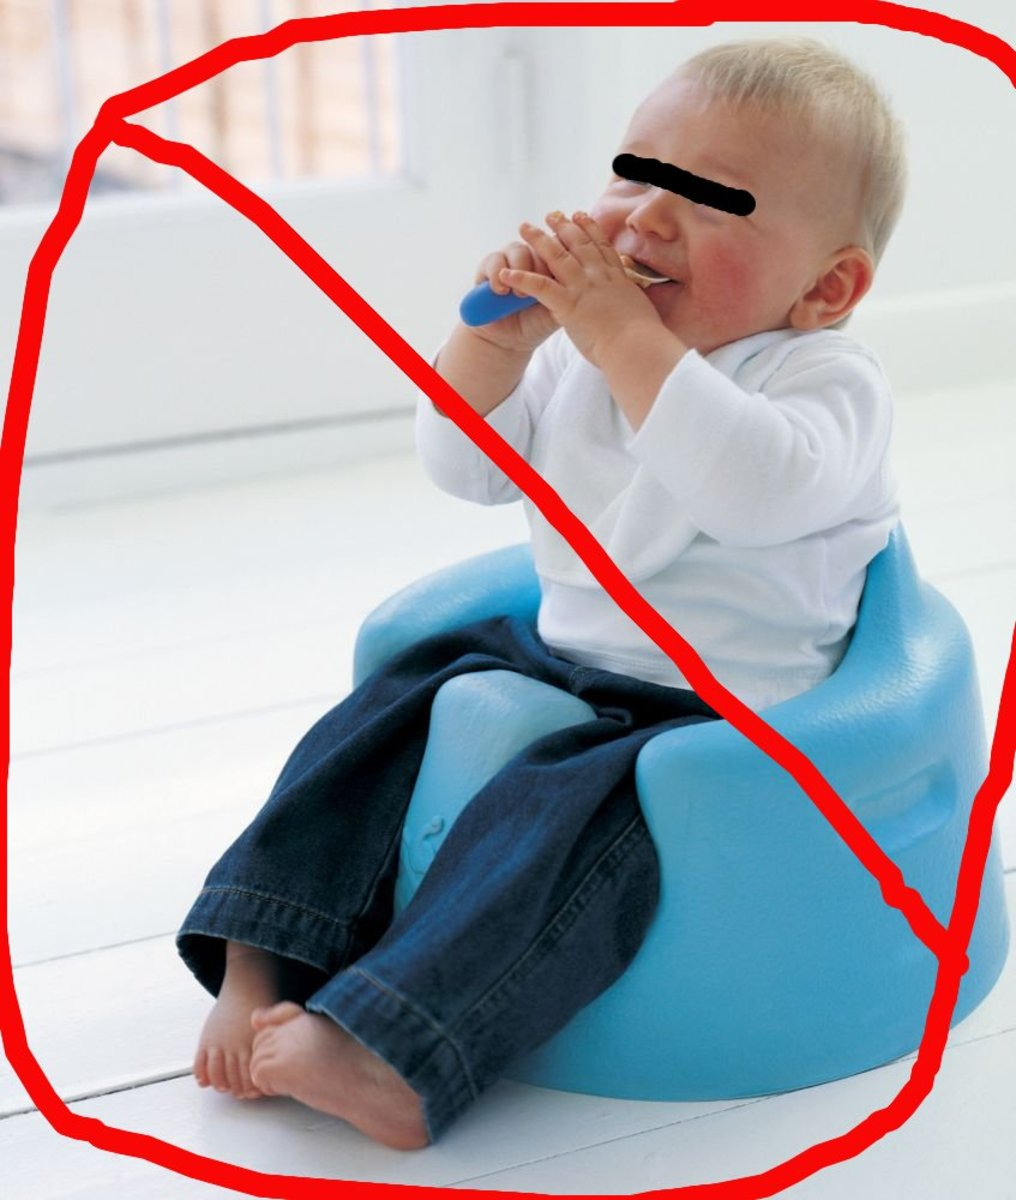 Say NO to the Bumbo baby chair! (Child's likeness is obscured to protect his or her innocence)